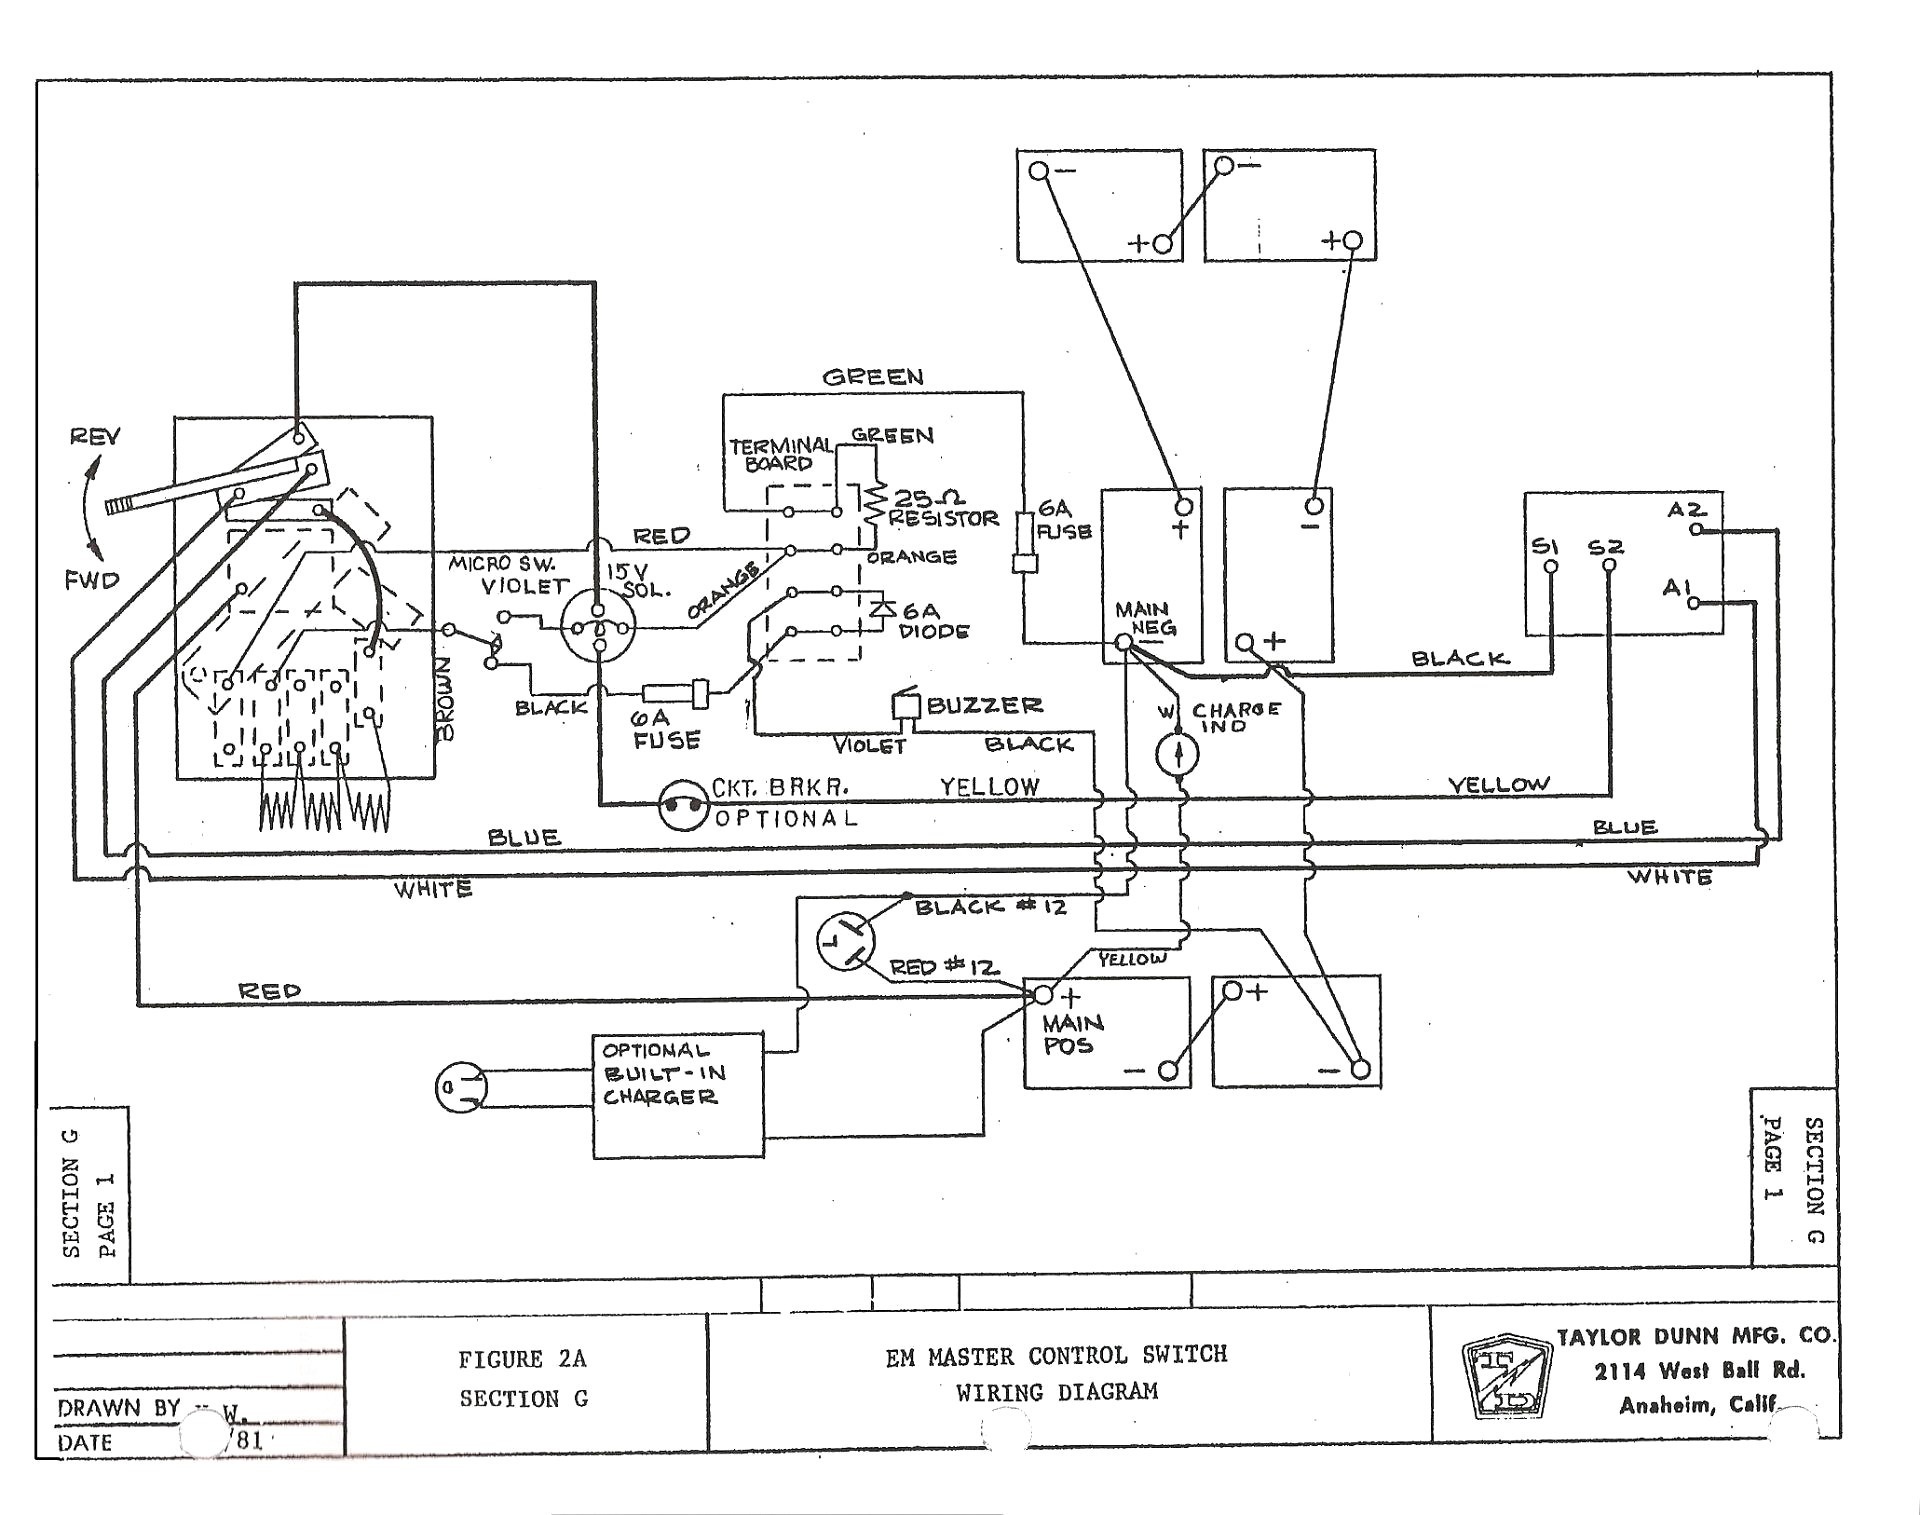 ezgo wiring diagram for 98 ezgo golf cart wiring diagram for 98